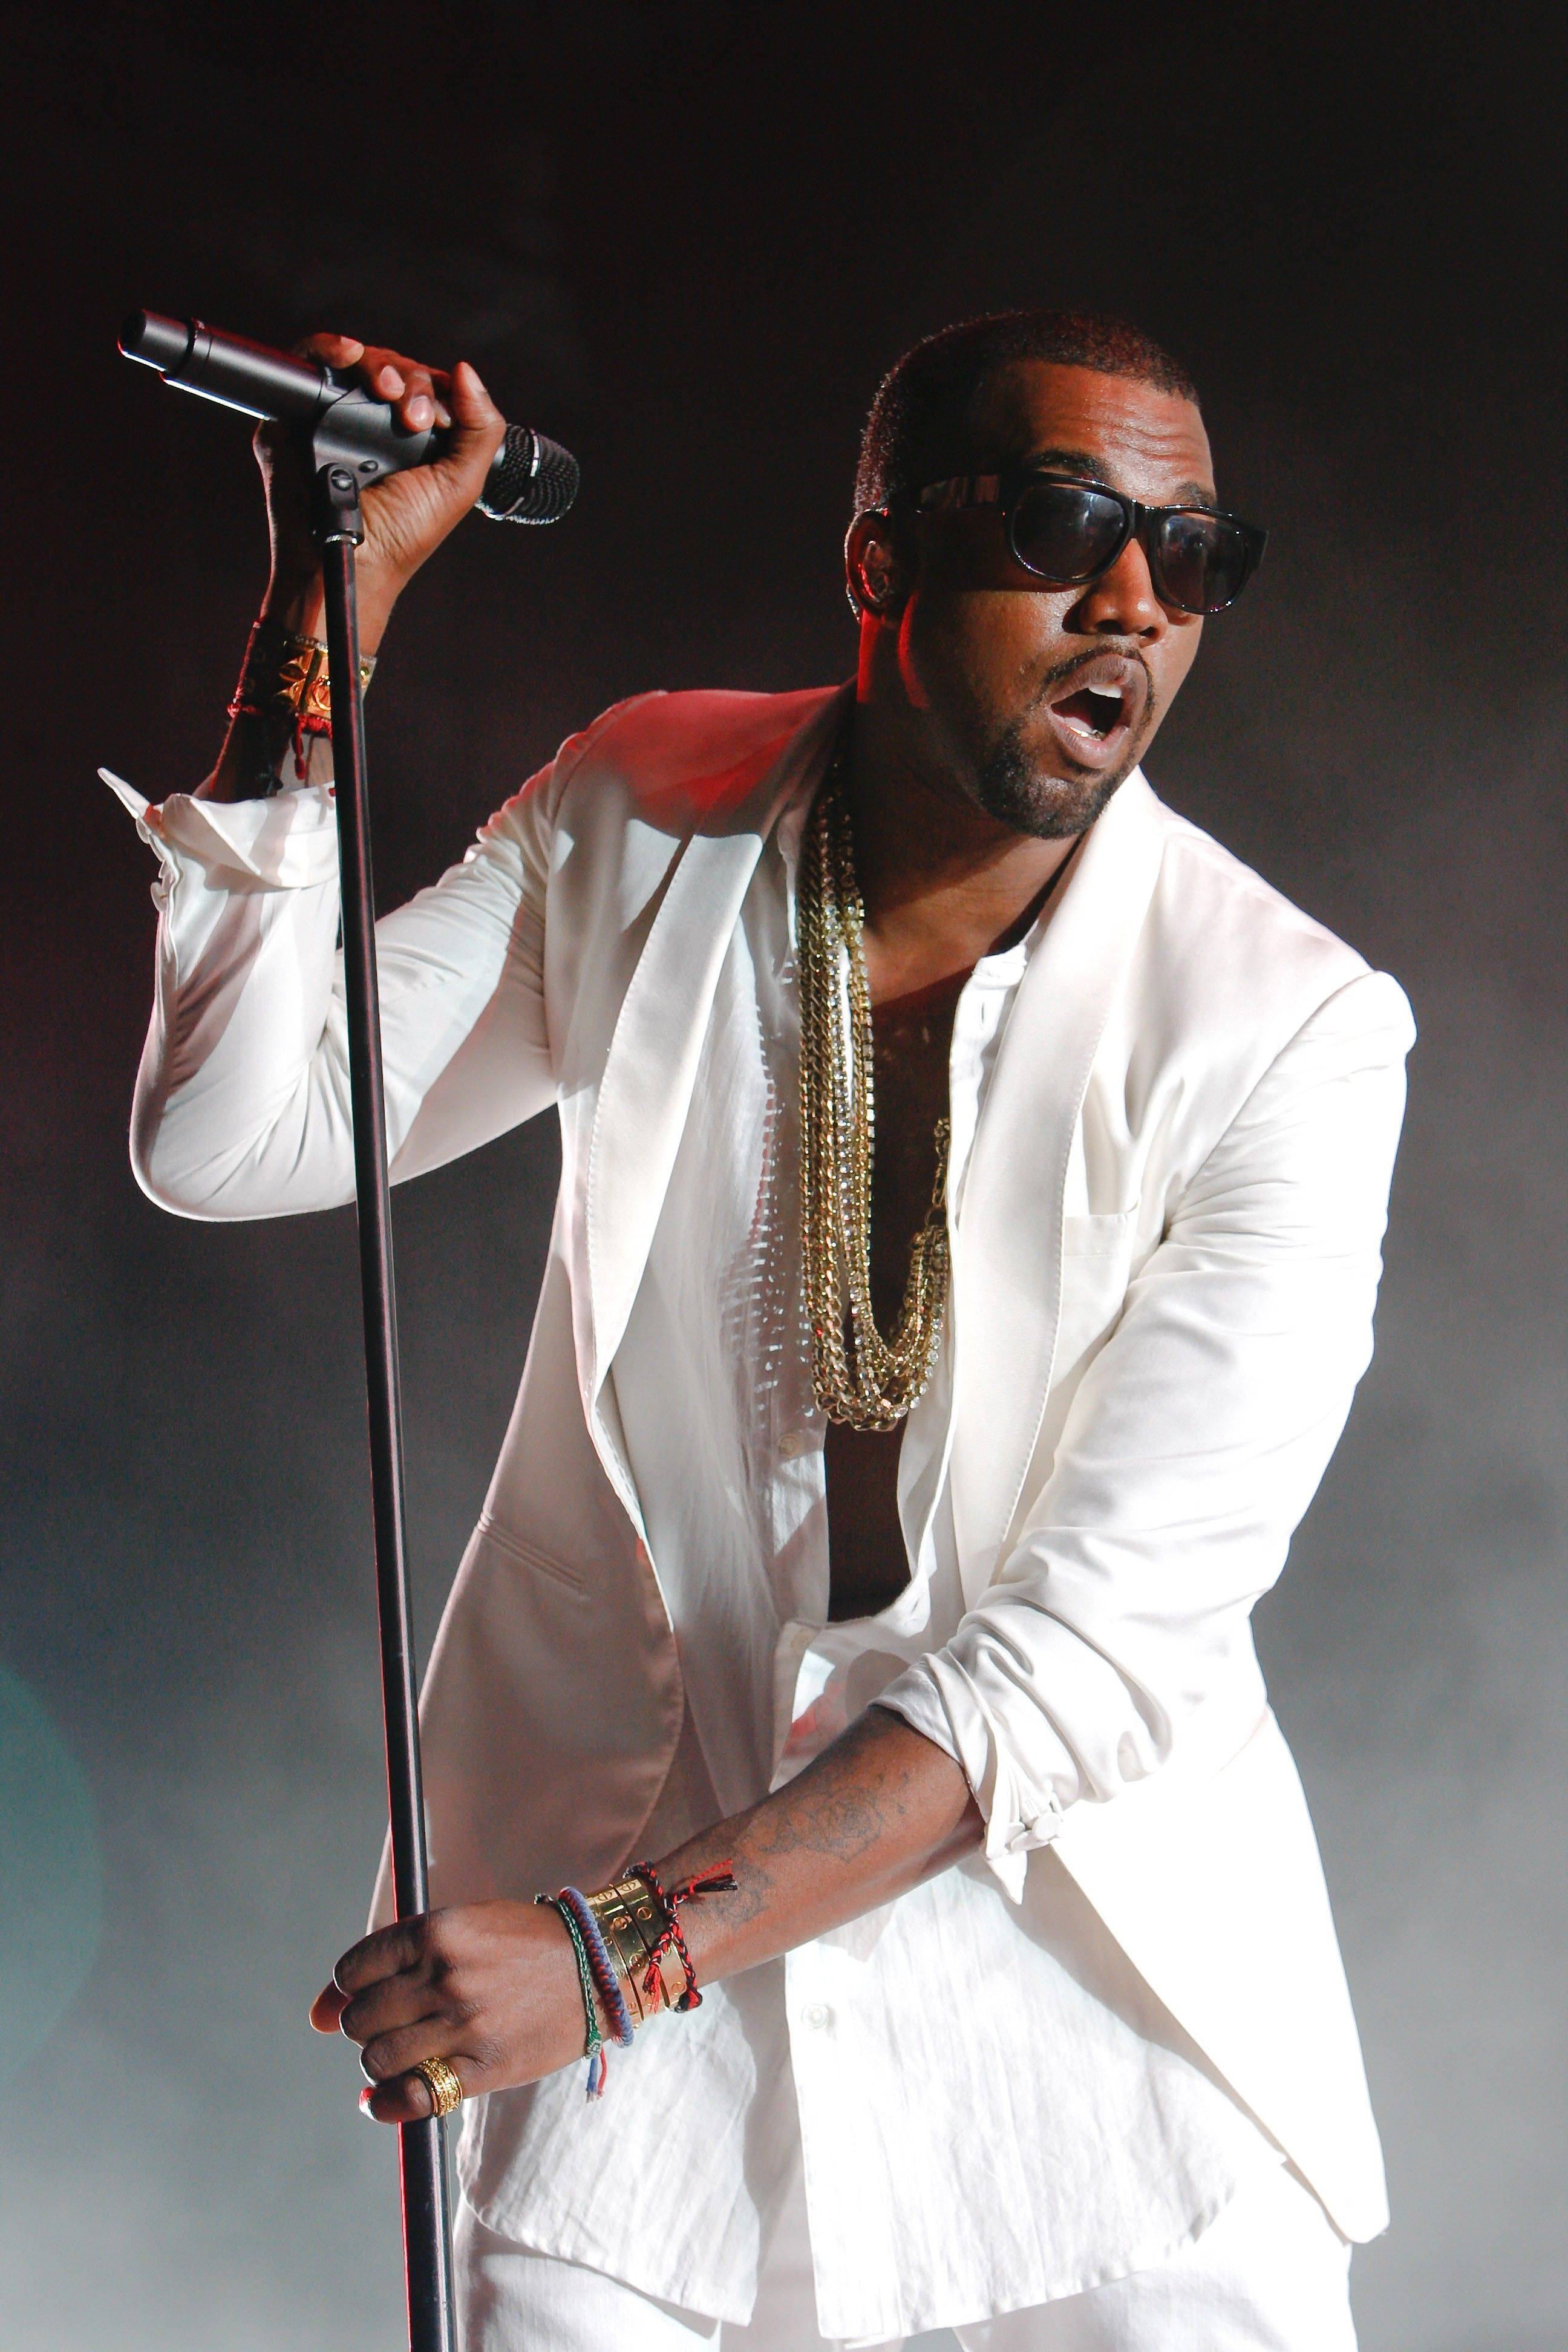 Kanye West was nominated for seven Grammy Awards on Wednesday. The awards will be held on Feb. 12.